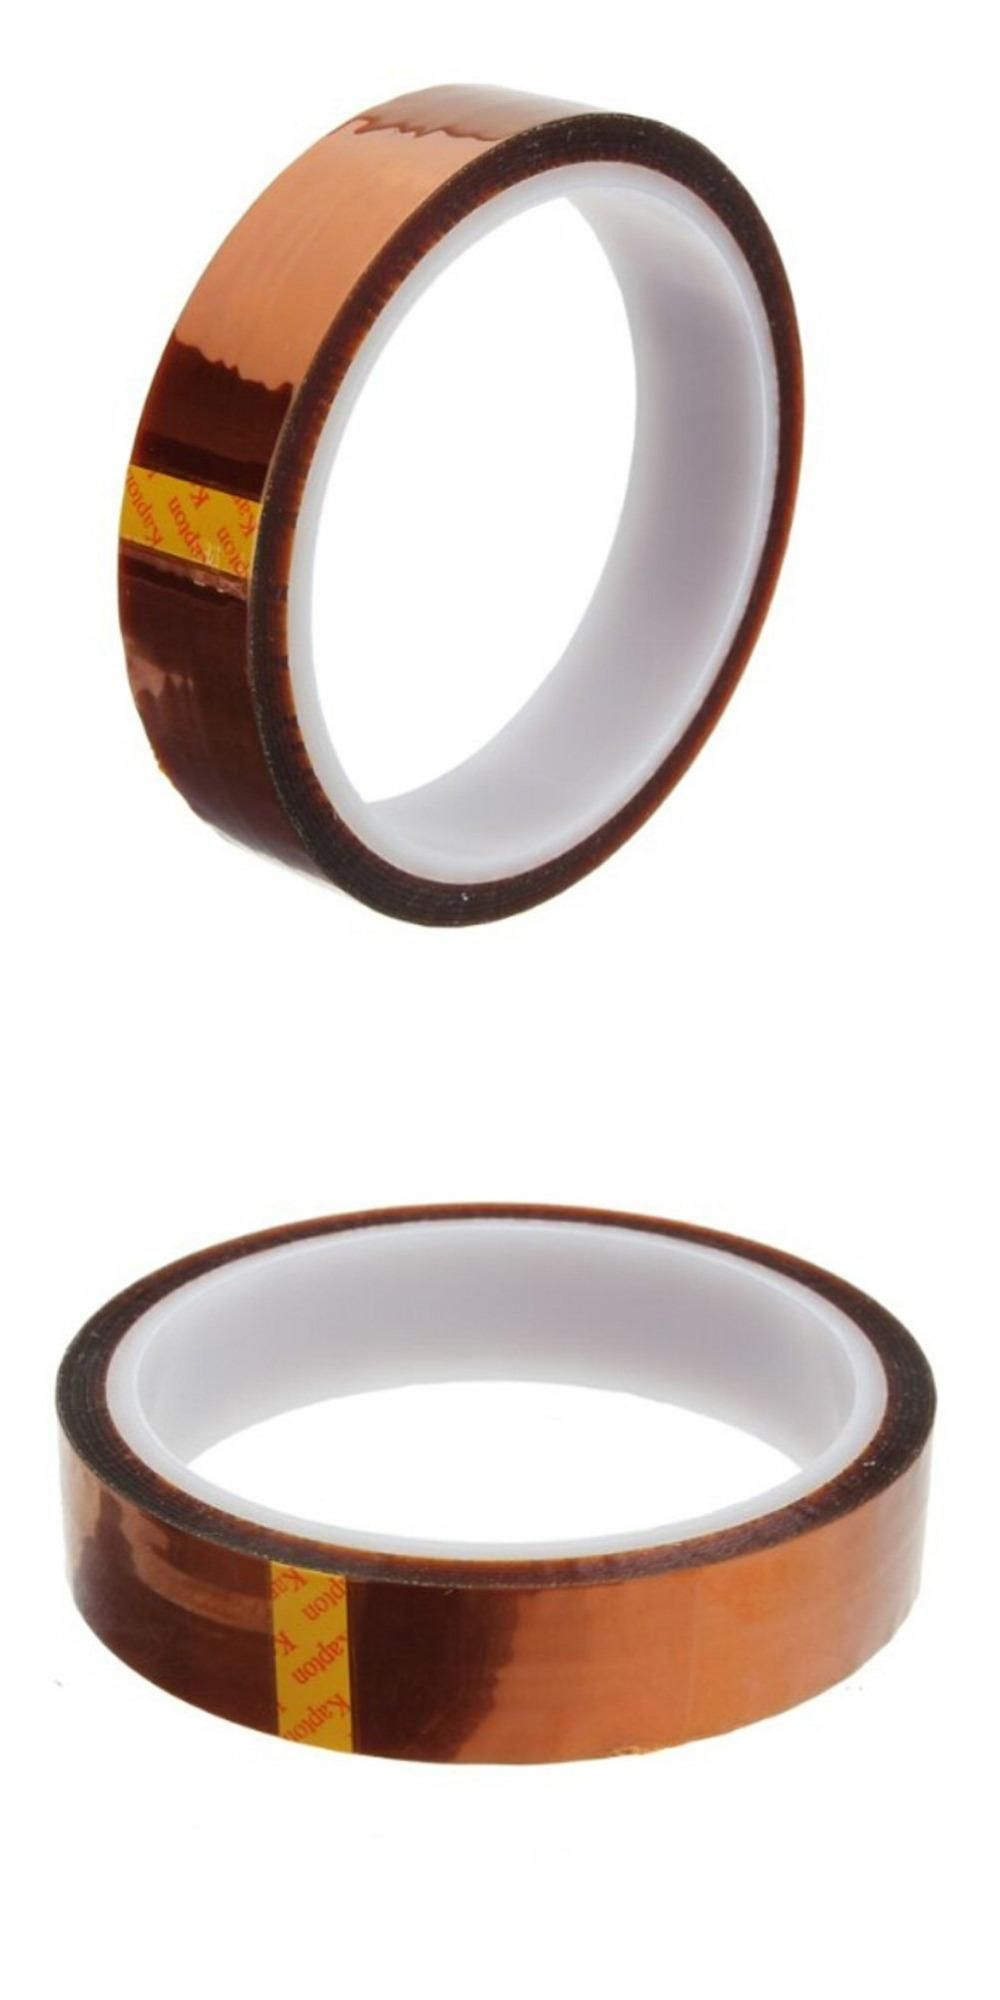 5.51US $ |20mm x 30m Heat Resistant High Temperature Polyimide Adhesive Tape Tawny|heat resistant tape 20mm|tape tapetape temperature resistant - AliExpress